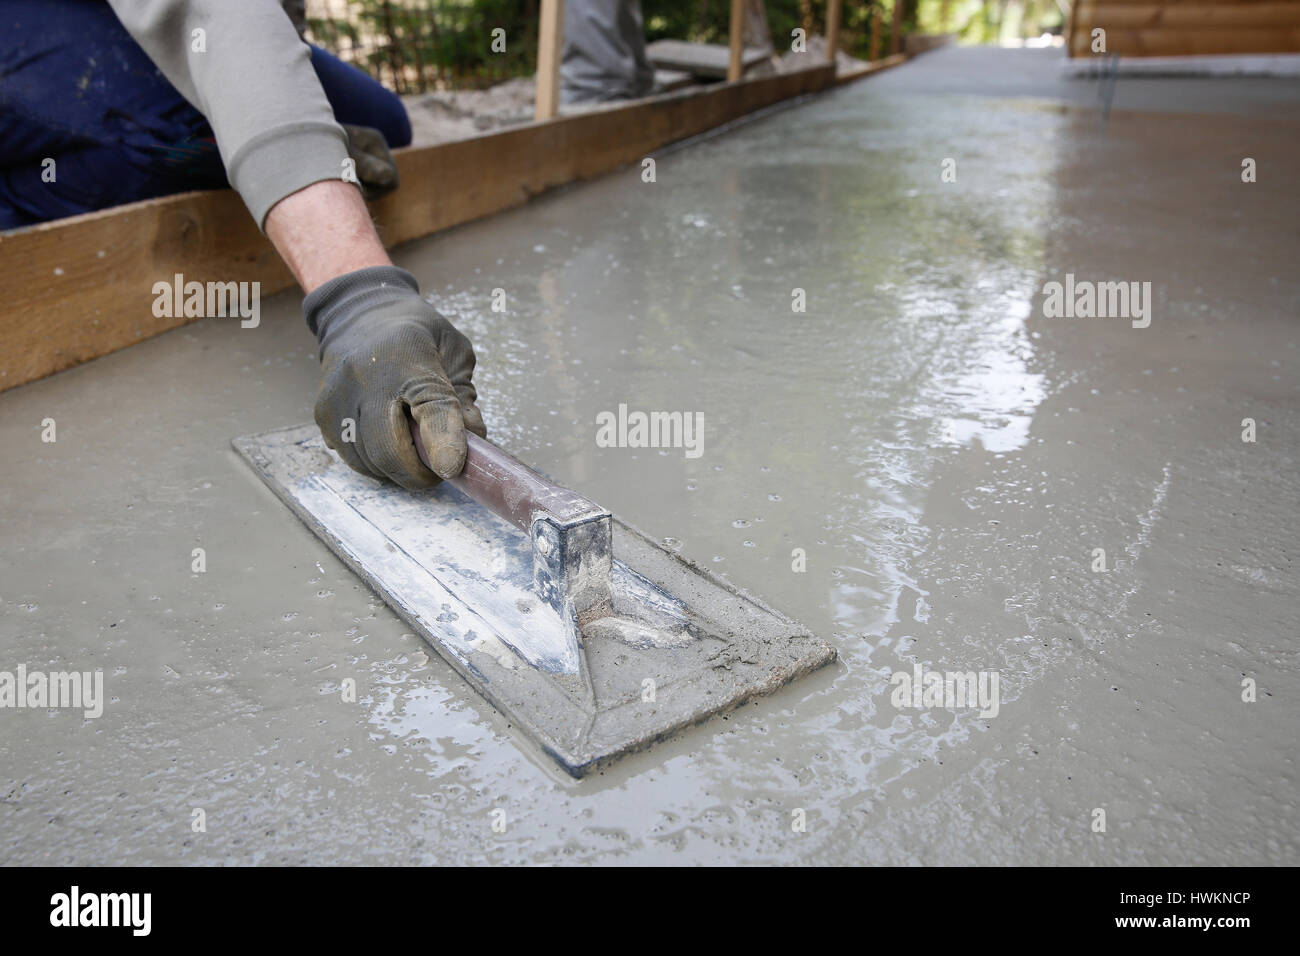 Mason leveling and screeding concrete floor base with square trowel mason leveling and screeding concrete floor base with square trowel in front of the house construction business do it yourself precision work aroun solutioingenieria Choice Image